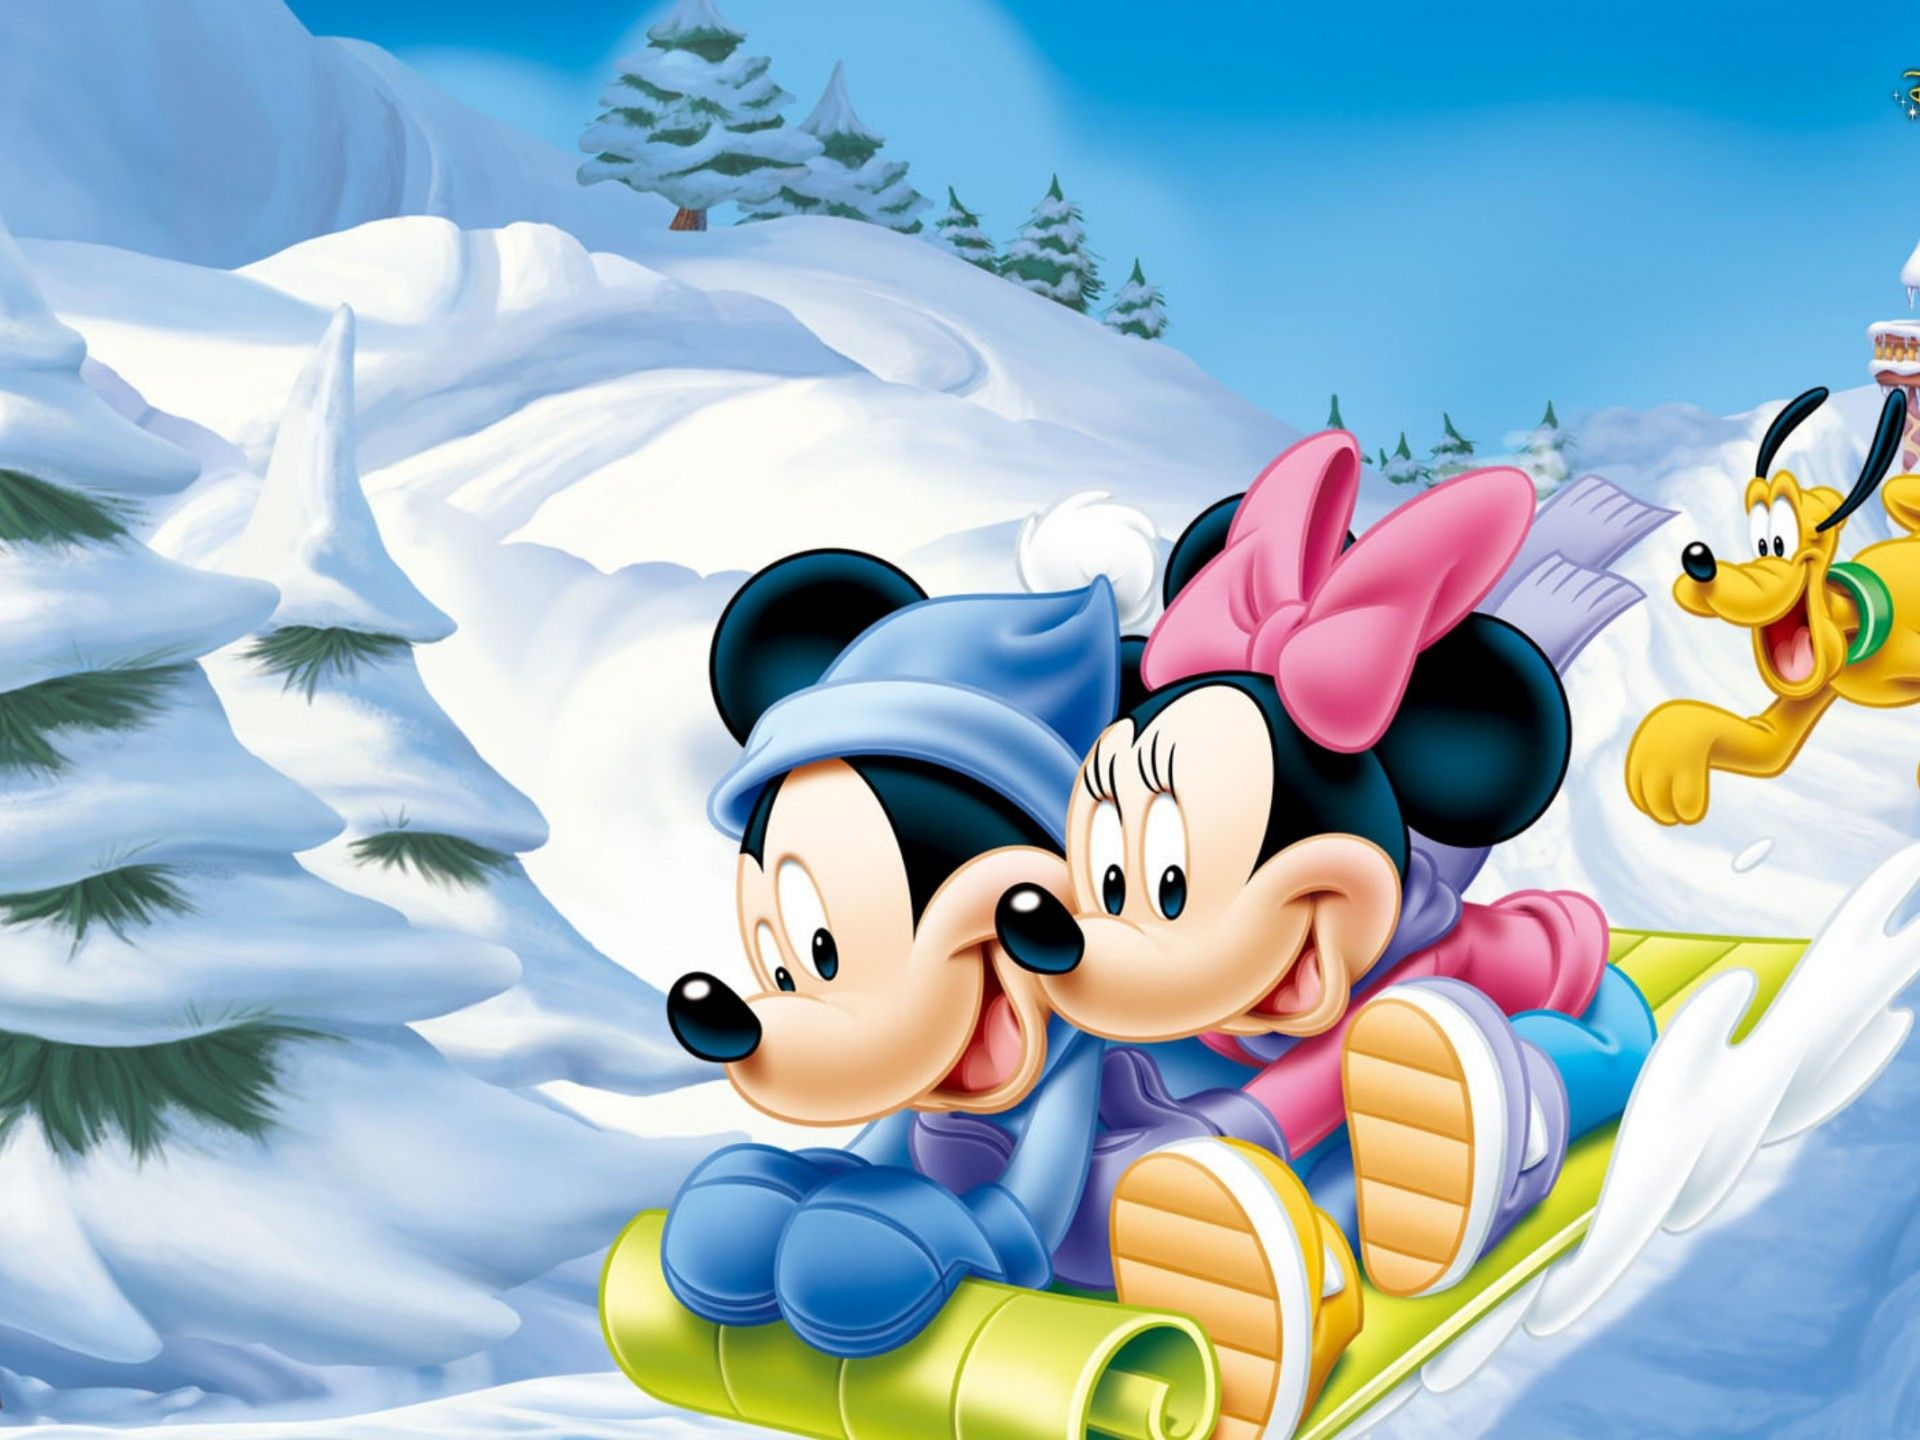 Mickey Mouse Cartoons HD Wallpapers Download HD Walls 1920×1080 Mickey Minnie Wallpapers Free ...